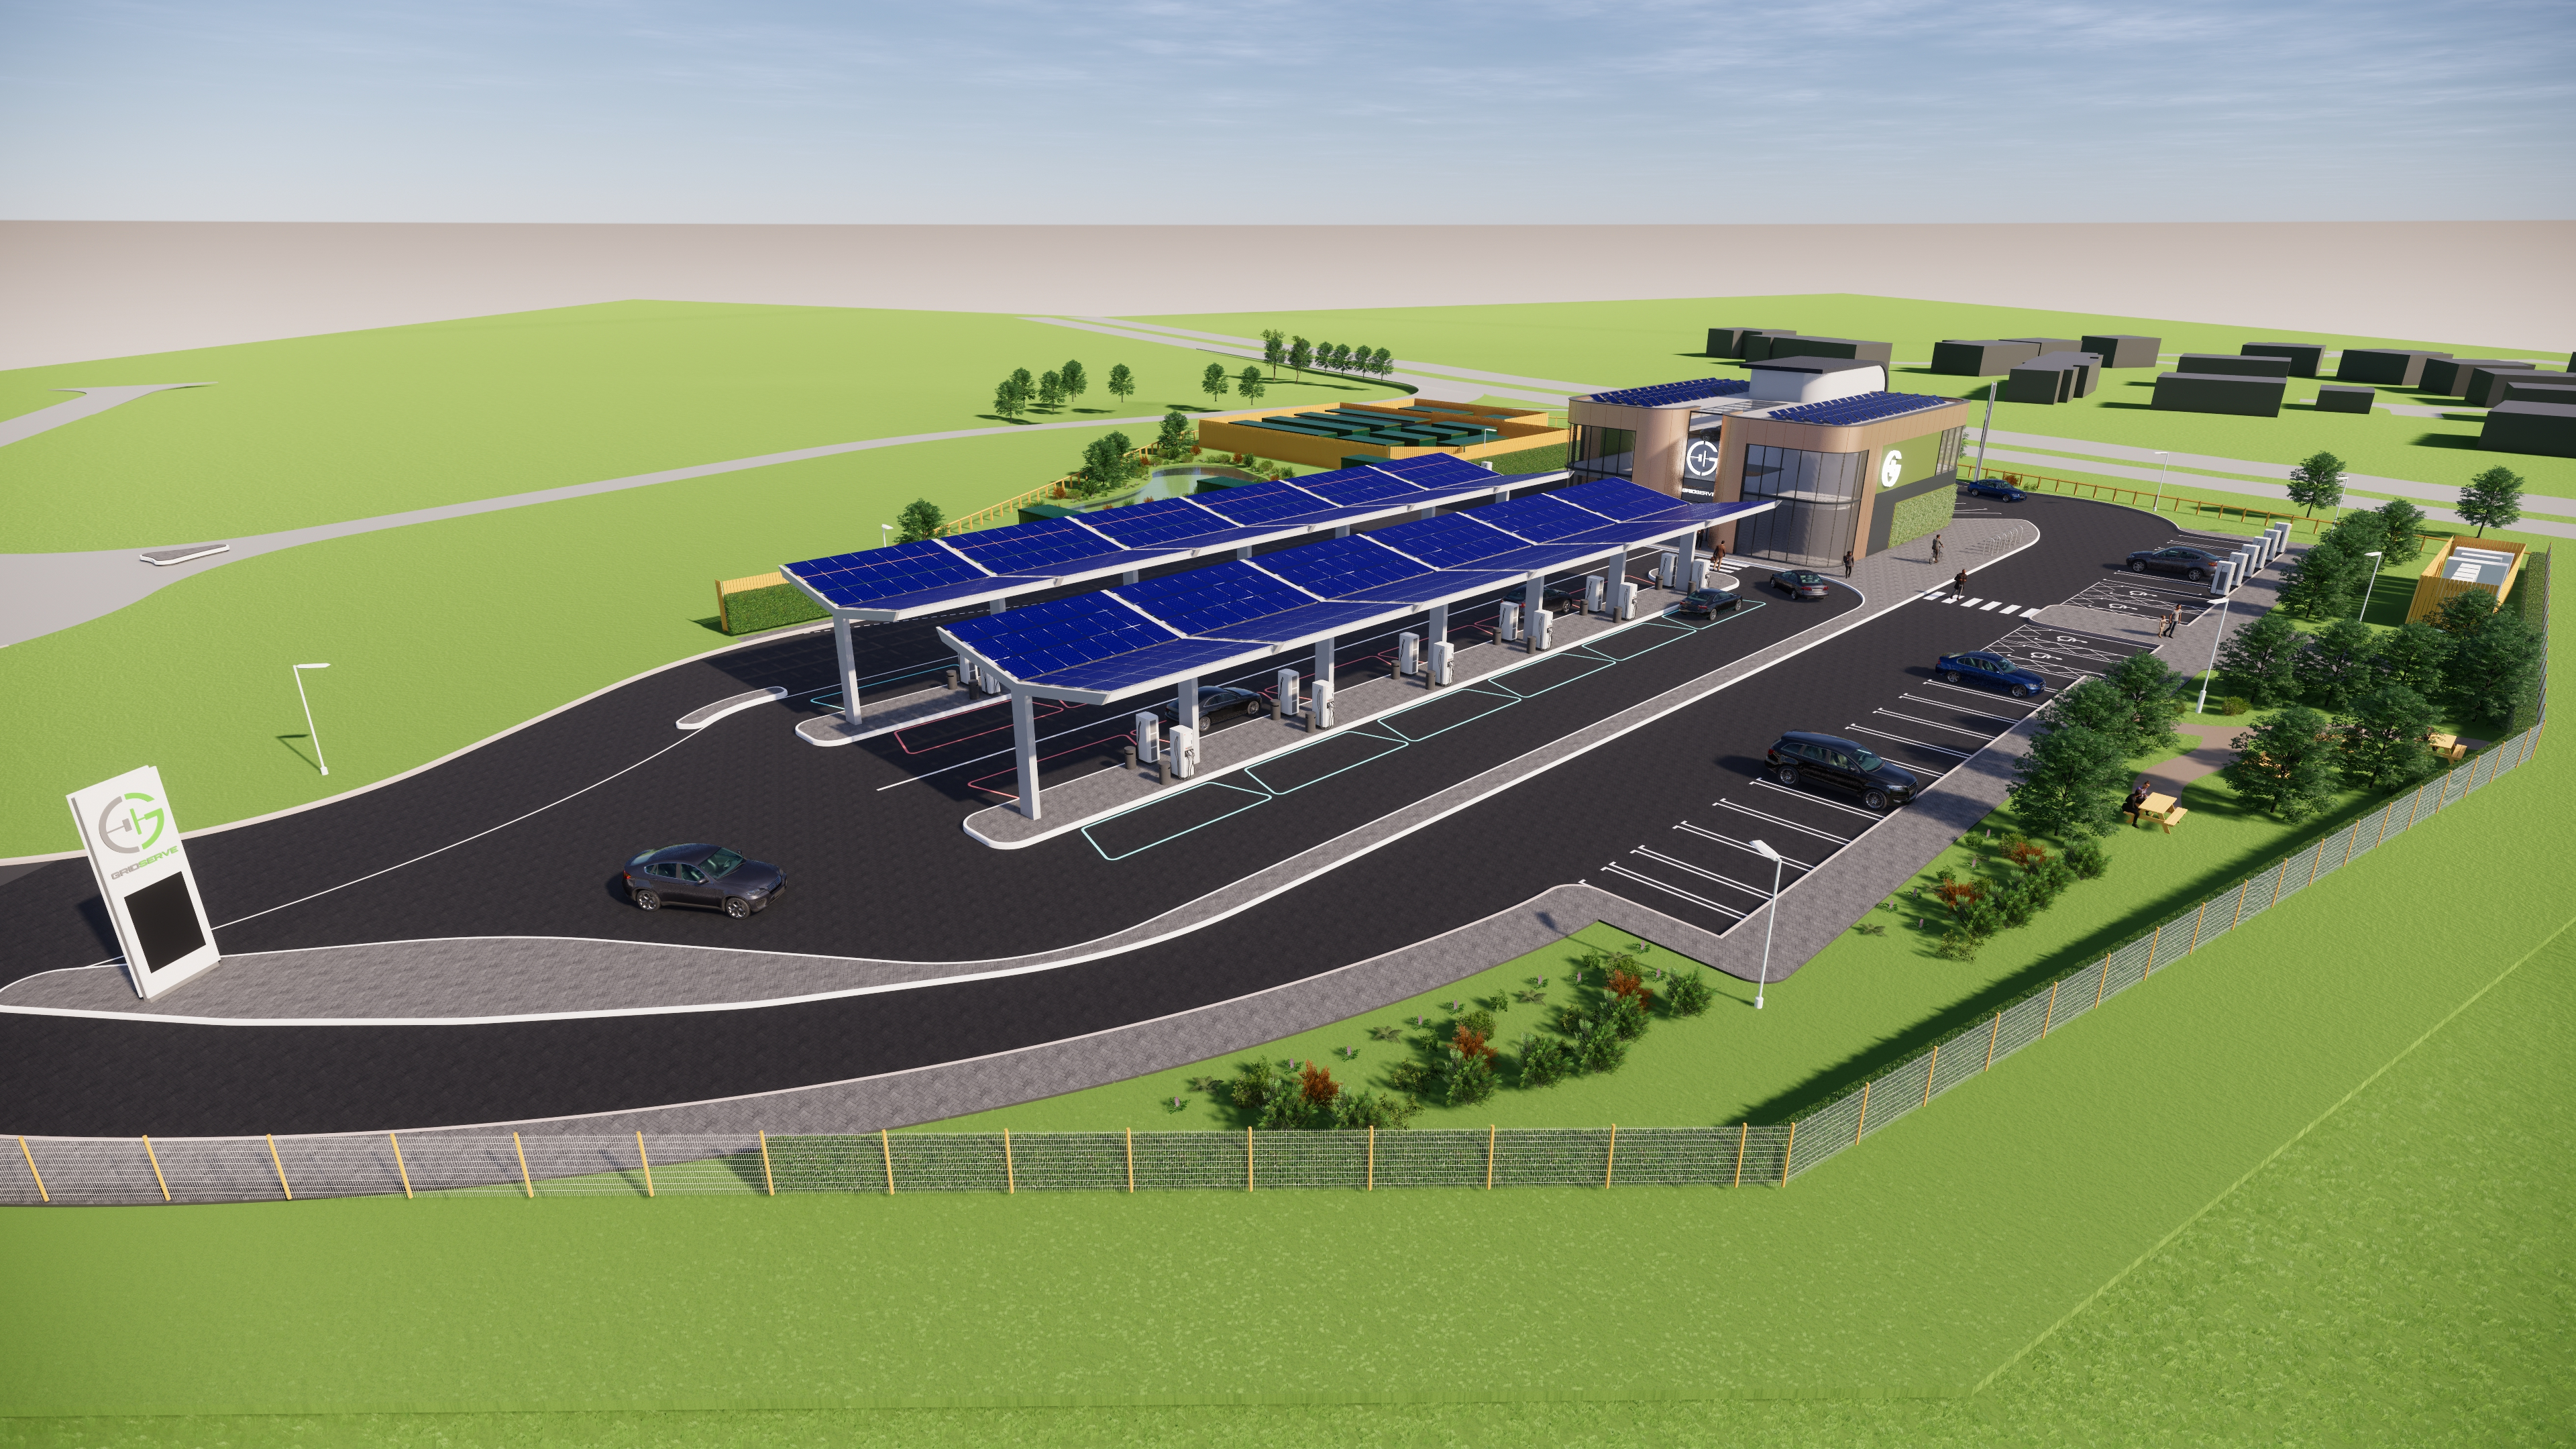 Artist impression of the Gridserve development at Great Notley, Braintree.